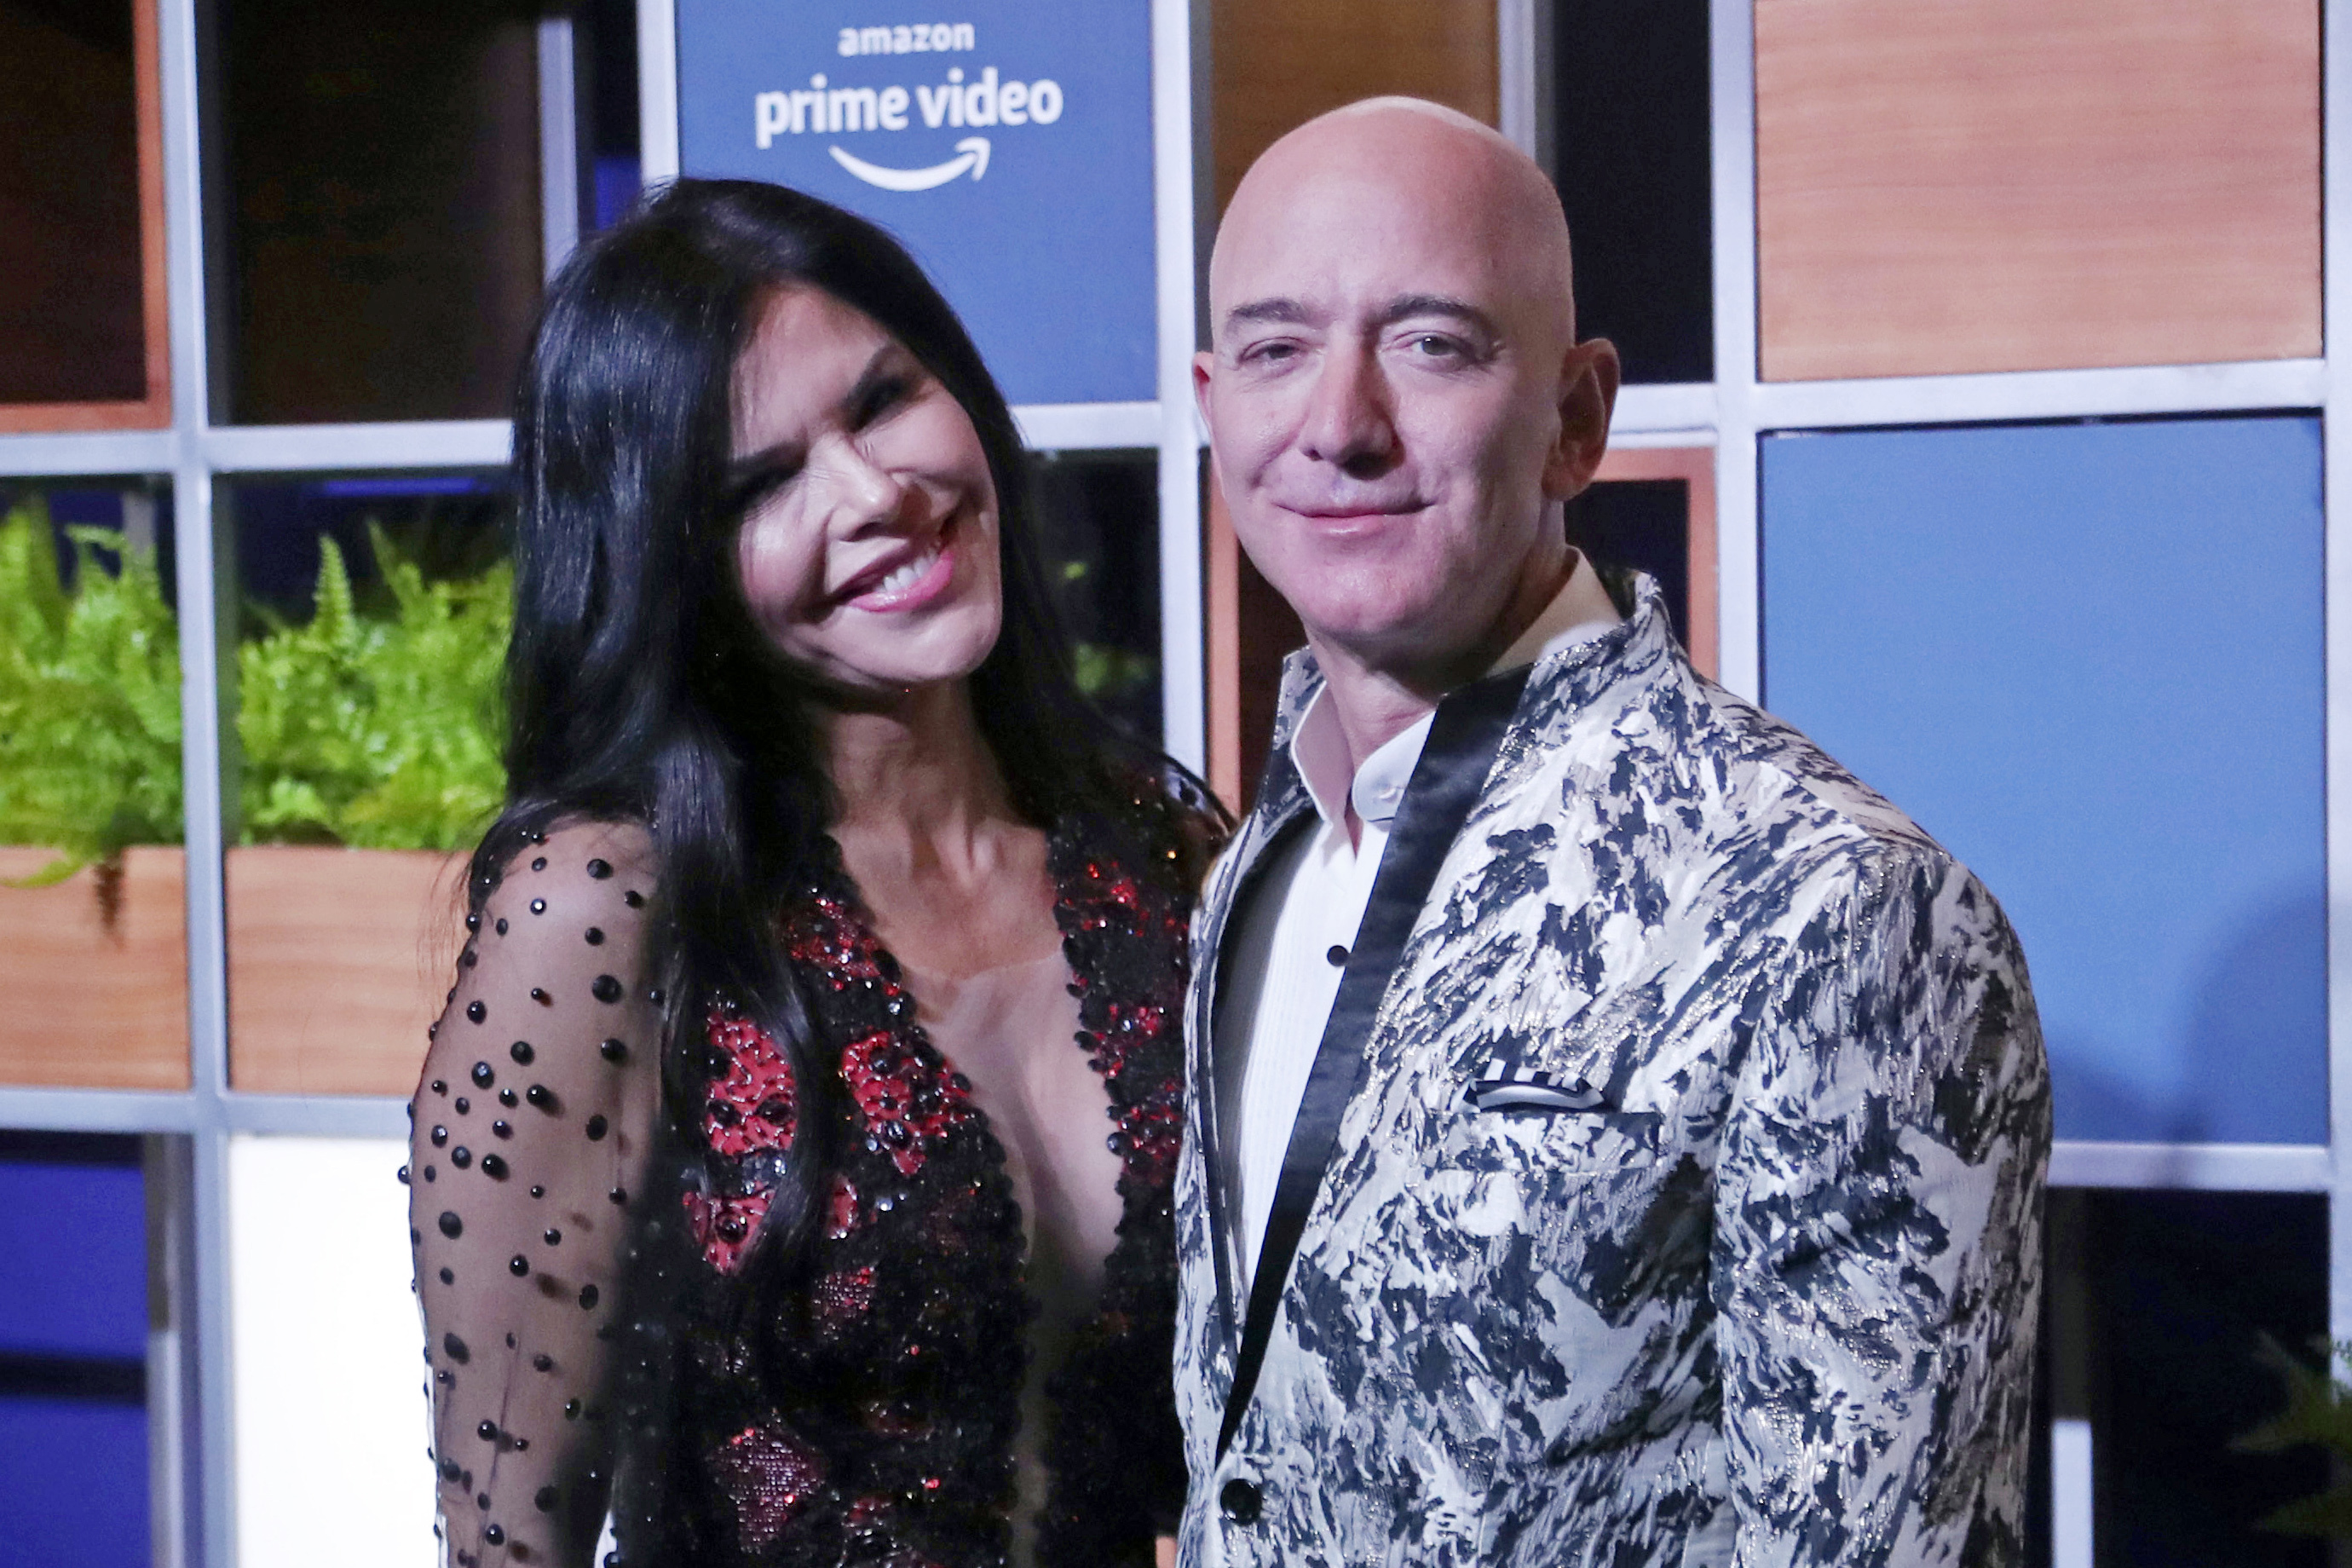 Amazon CEO Jeff Bezos, right and his girlfriend Lauren Sanchez poses for photographs during a blue carpet event organized by Amazon Prime Video in Mumbai, India on Jan. 16, 2020.